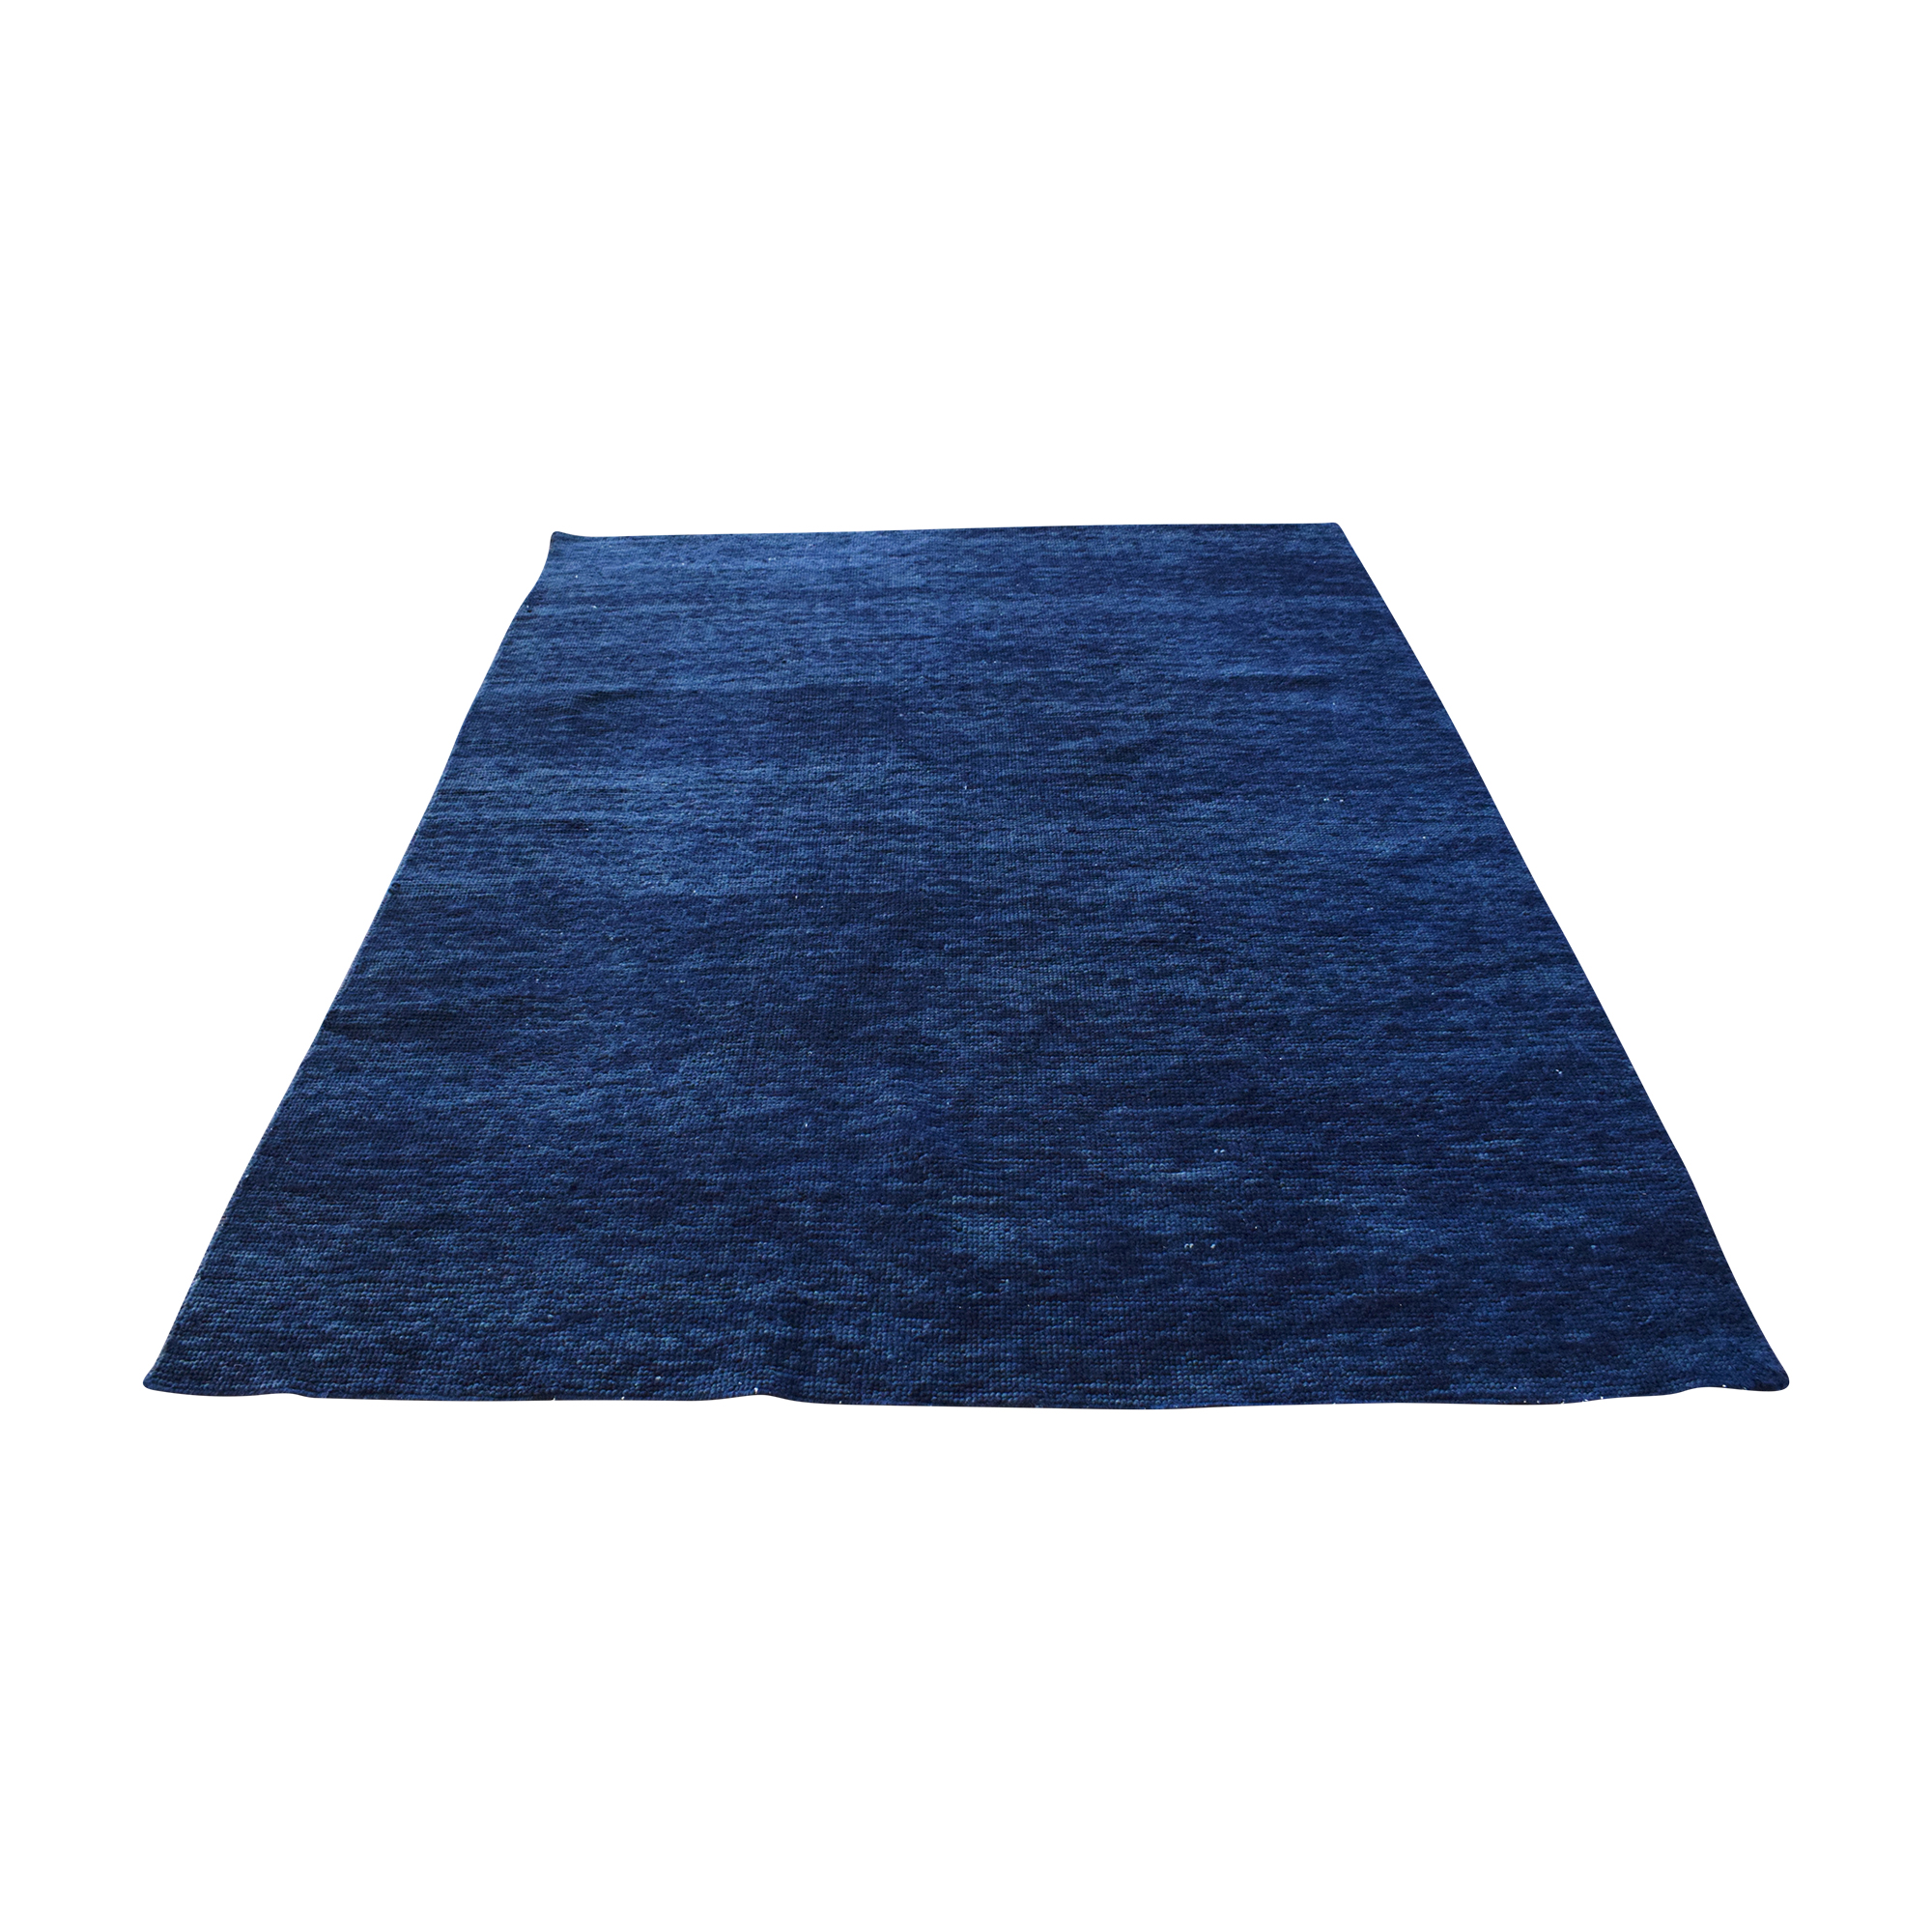 Room & Board Room & Board Mattea Indigo Blue Rug Decor